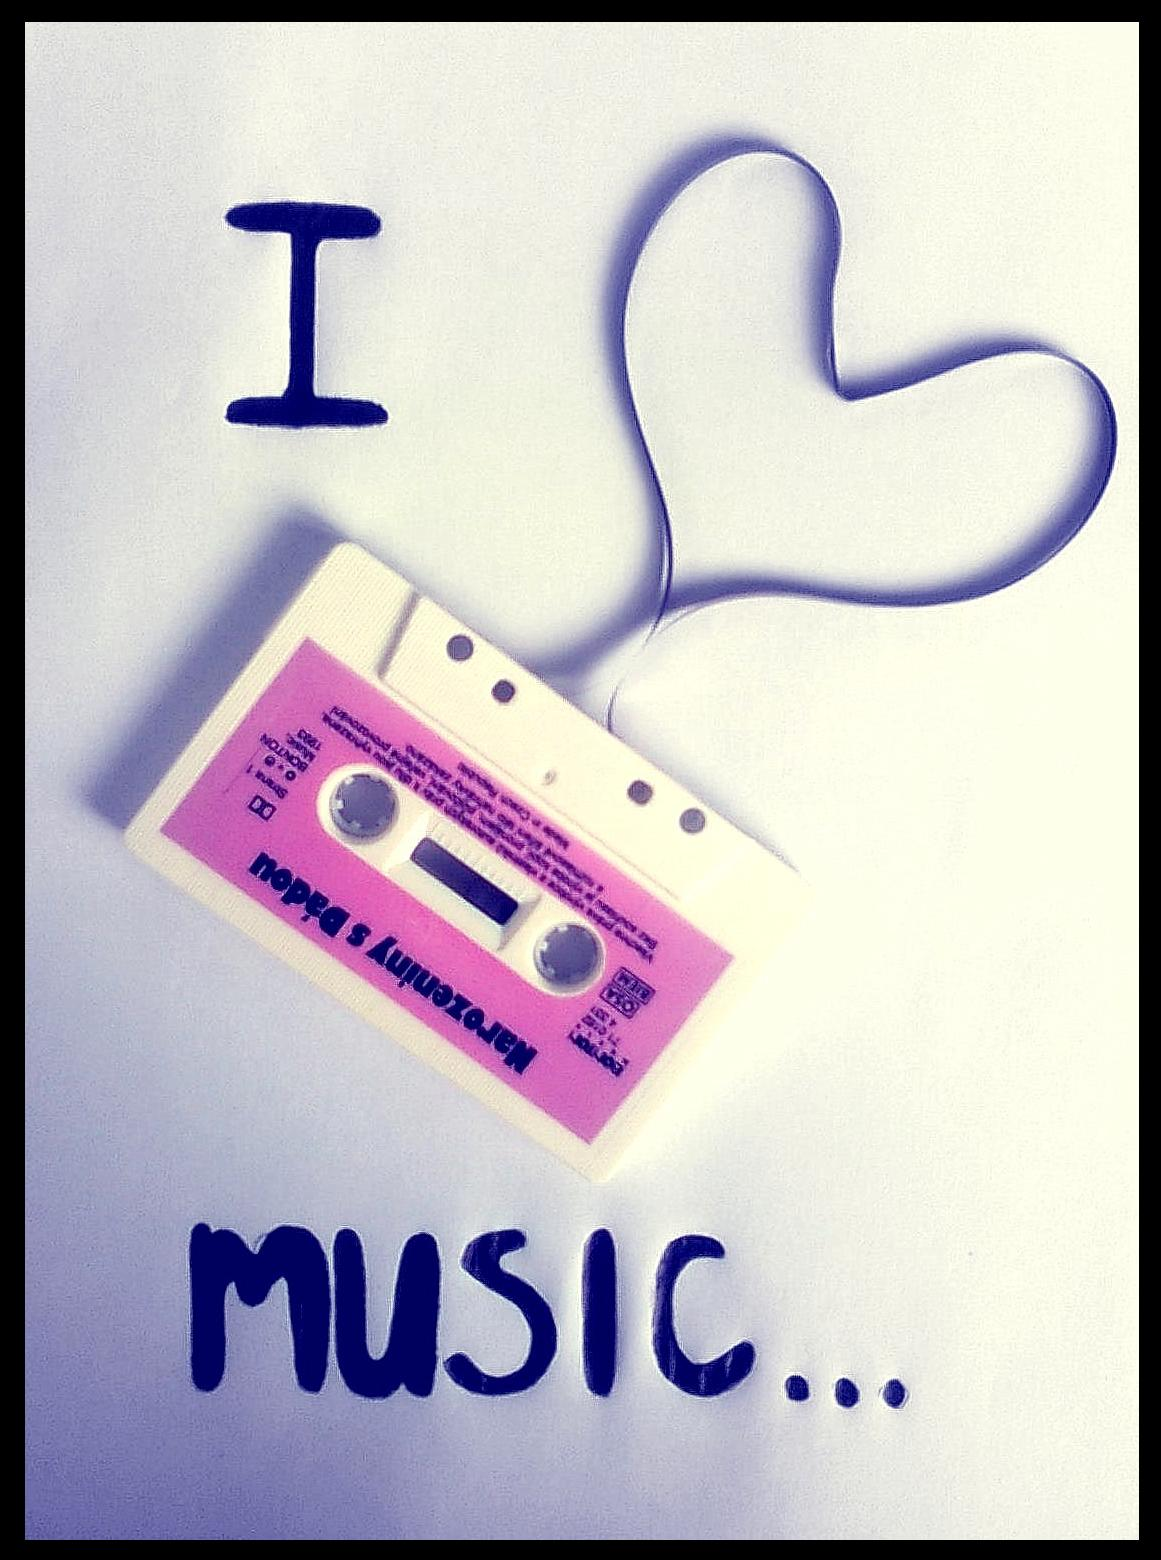 I_love_music_by_Debbie182